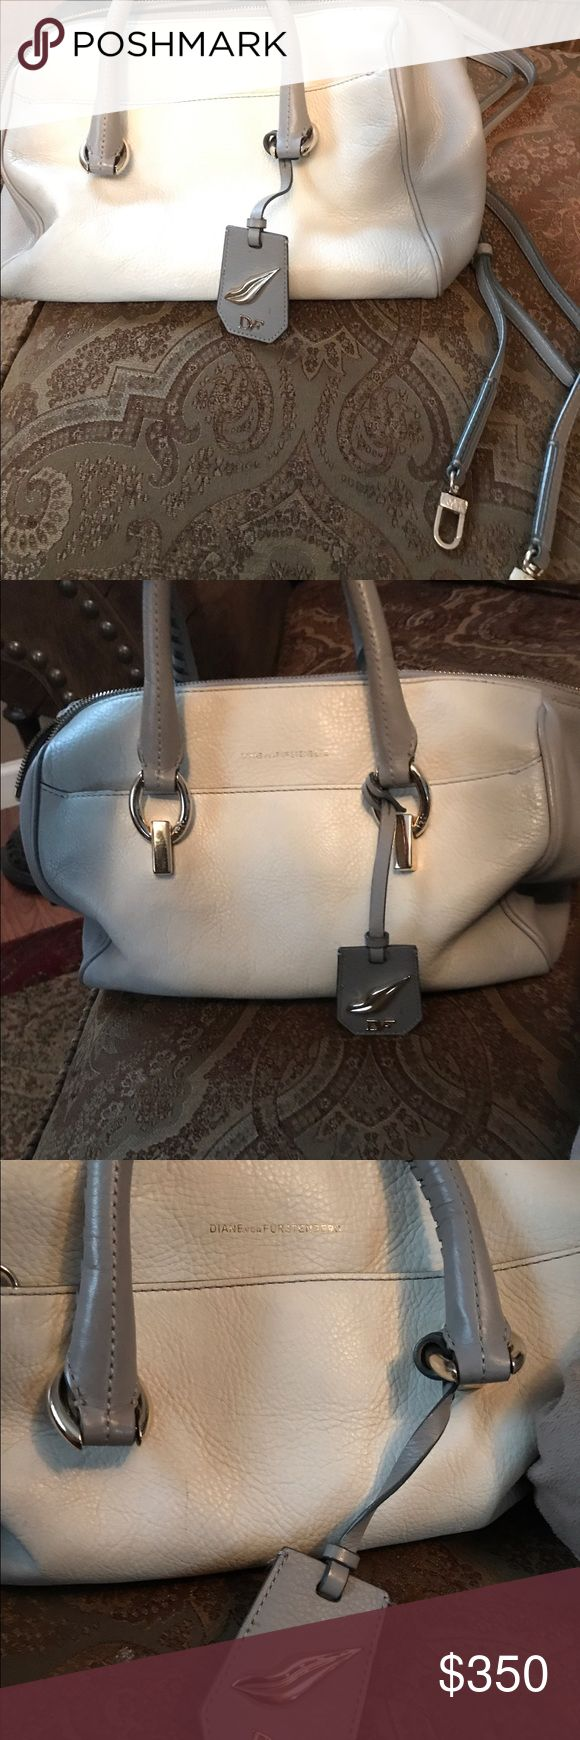 Dian Von Furstenberg Handbag Immaculate condition authentic its sample so not used creme and tan Handbag and comes with strap for shoulder bag and Diane Von Furstenberg manufactures her handbags from China Diane Von Furstenberg Bags Satchels